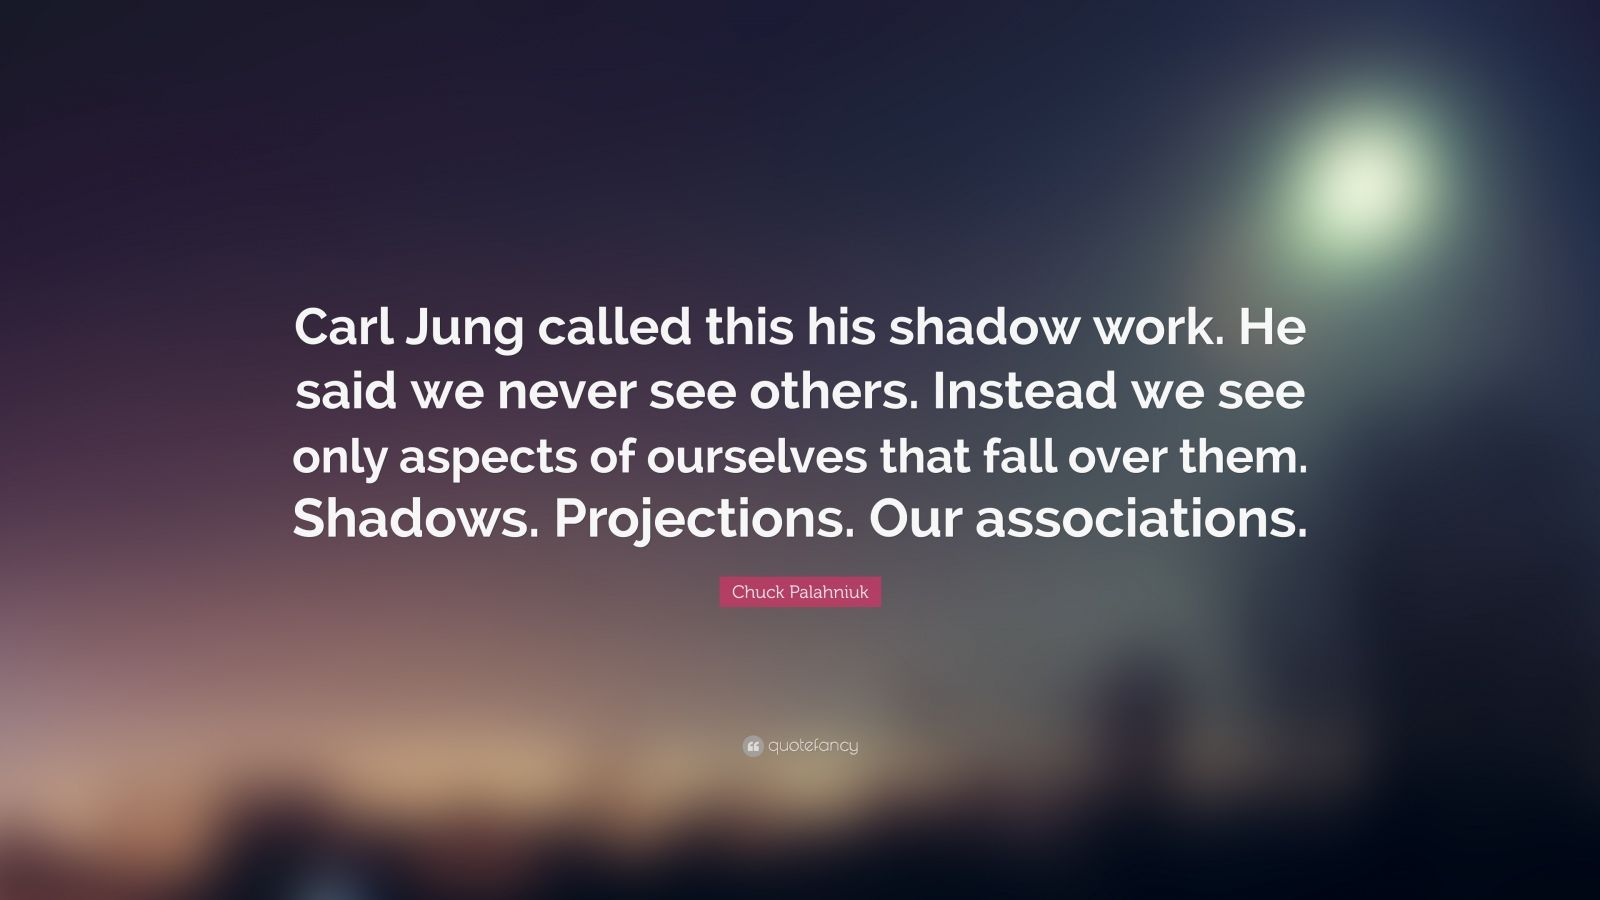 """Chuck Palahniuk Quote: """"Carl Jung called this his shadow work. He said we never see others. Instead we see only aspects of ourselves that fall over them. Shadows. Projections. Our associations."""""""